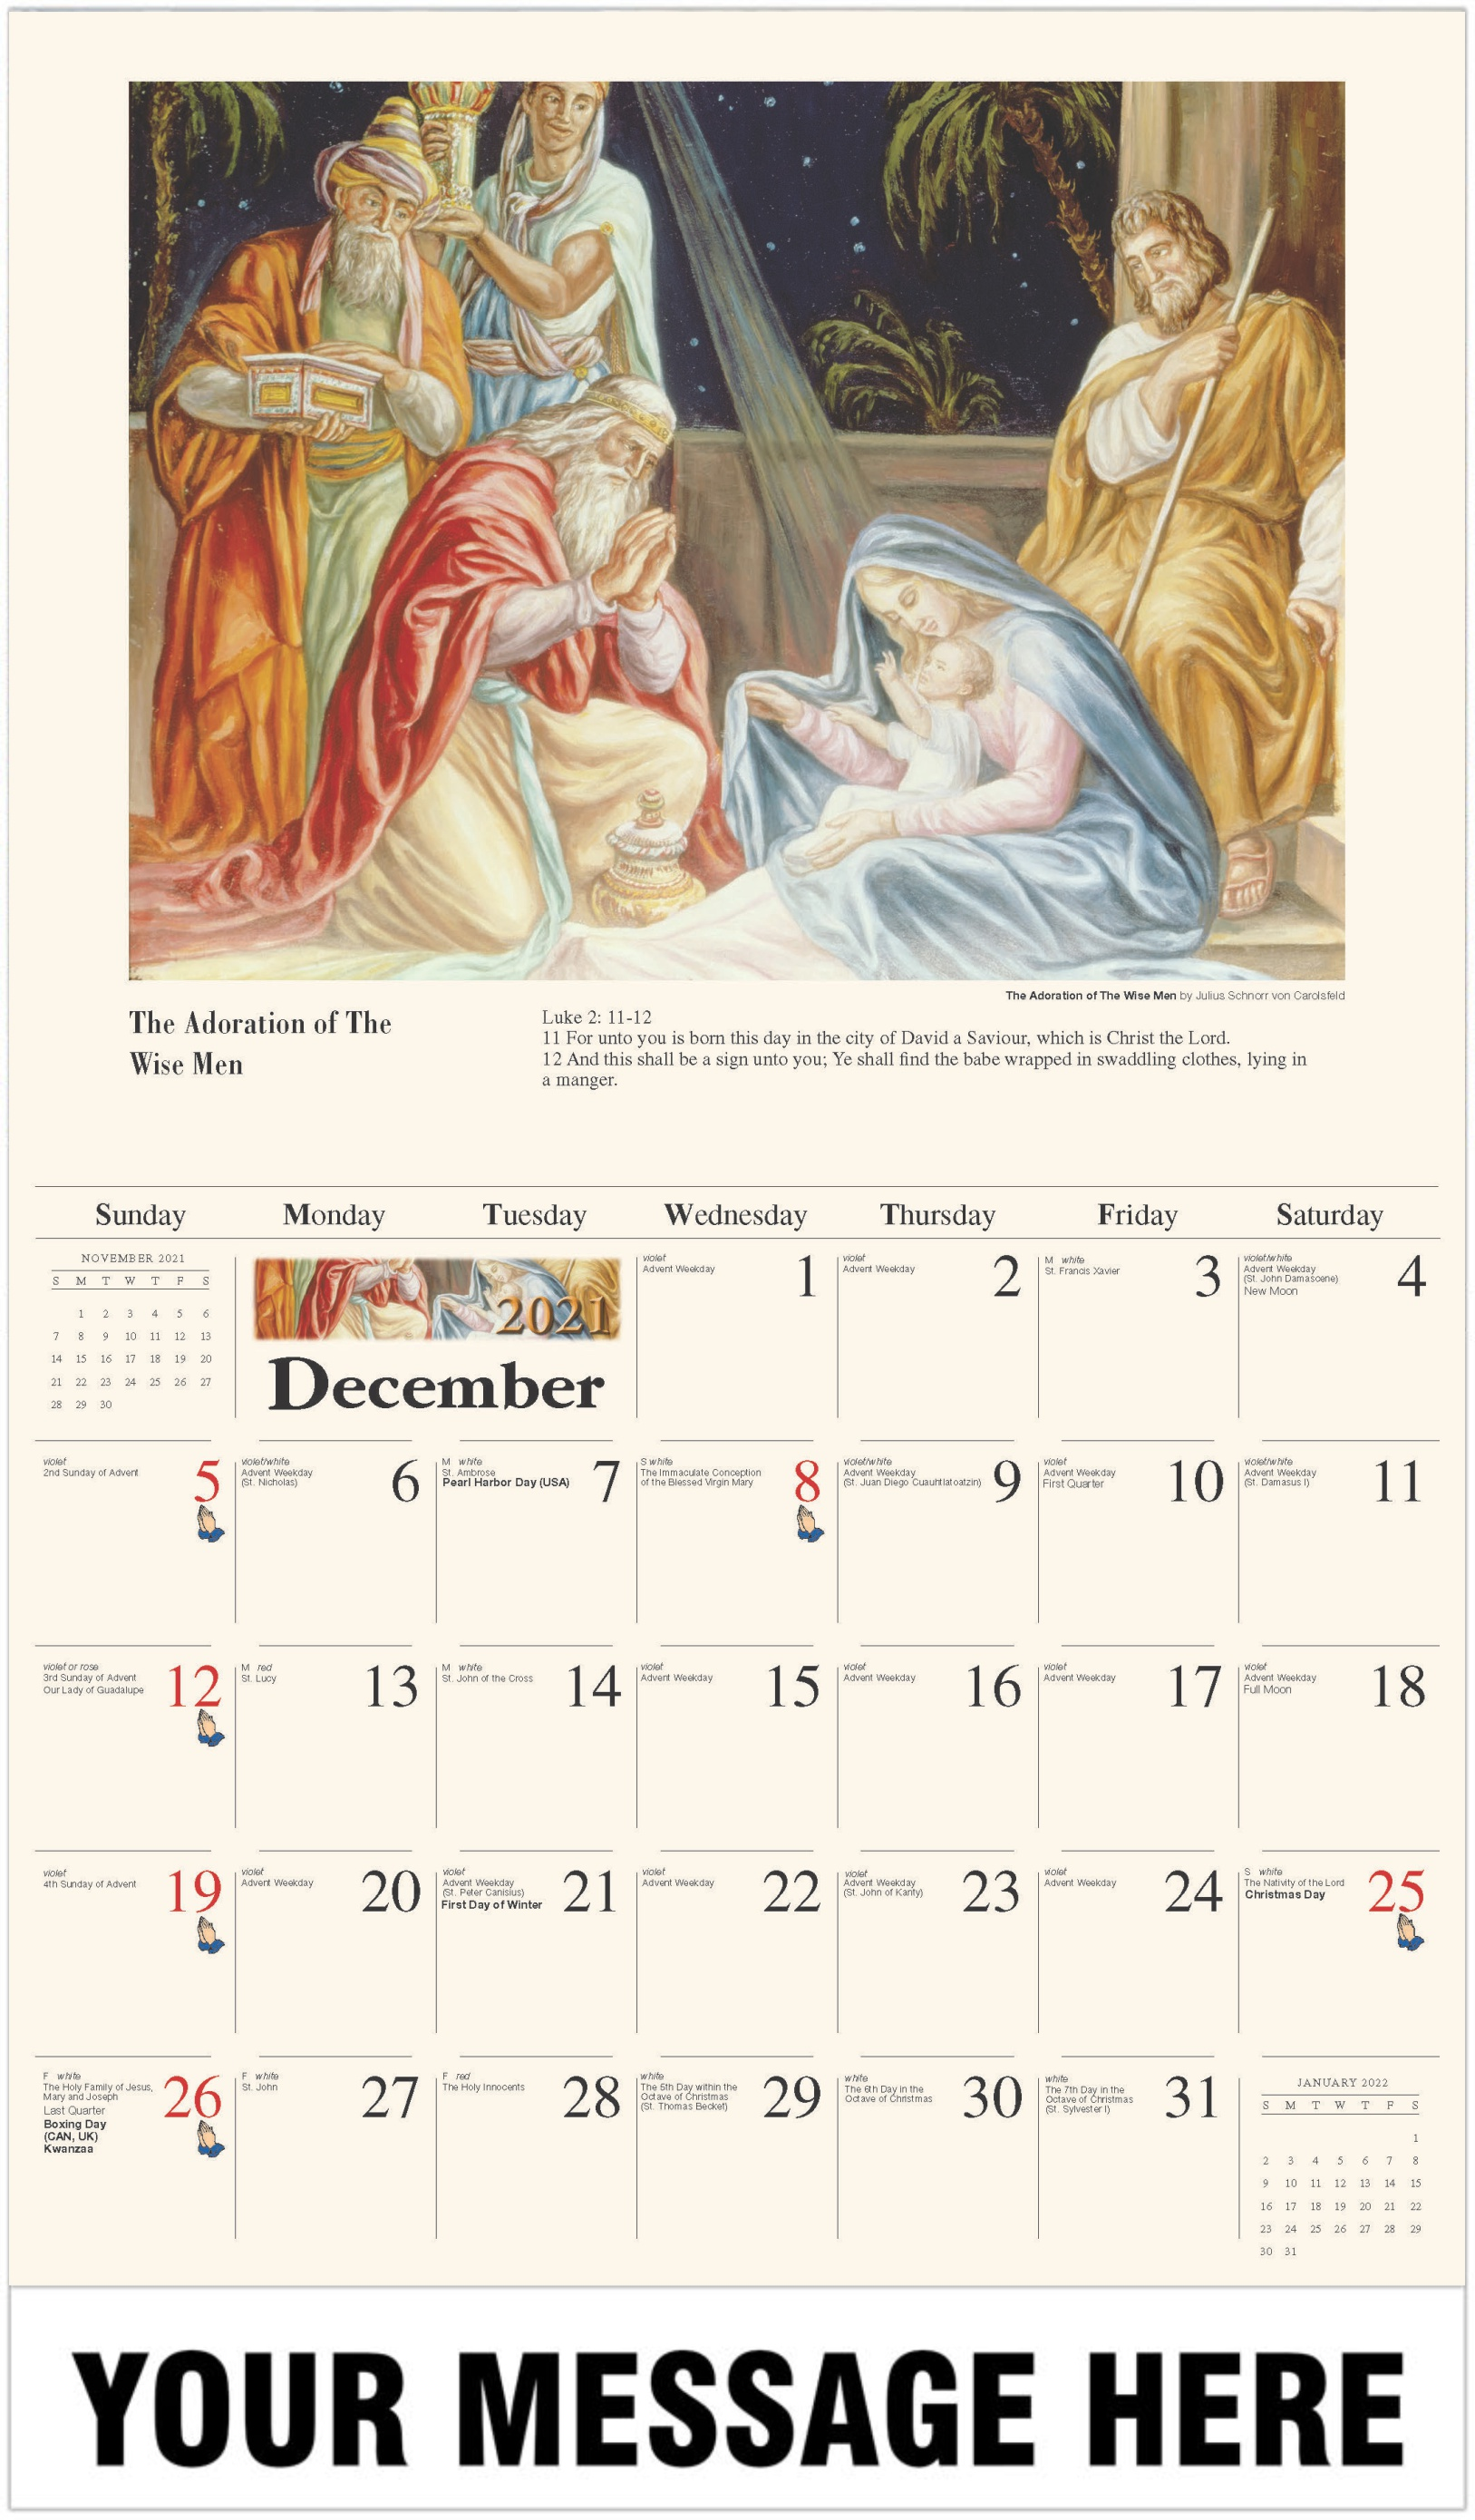 Adoration of the Wise Men - December 2021 - Catholic Inspiration 2021 Promotional Calendar